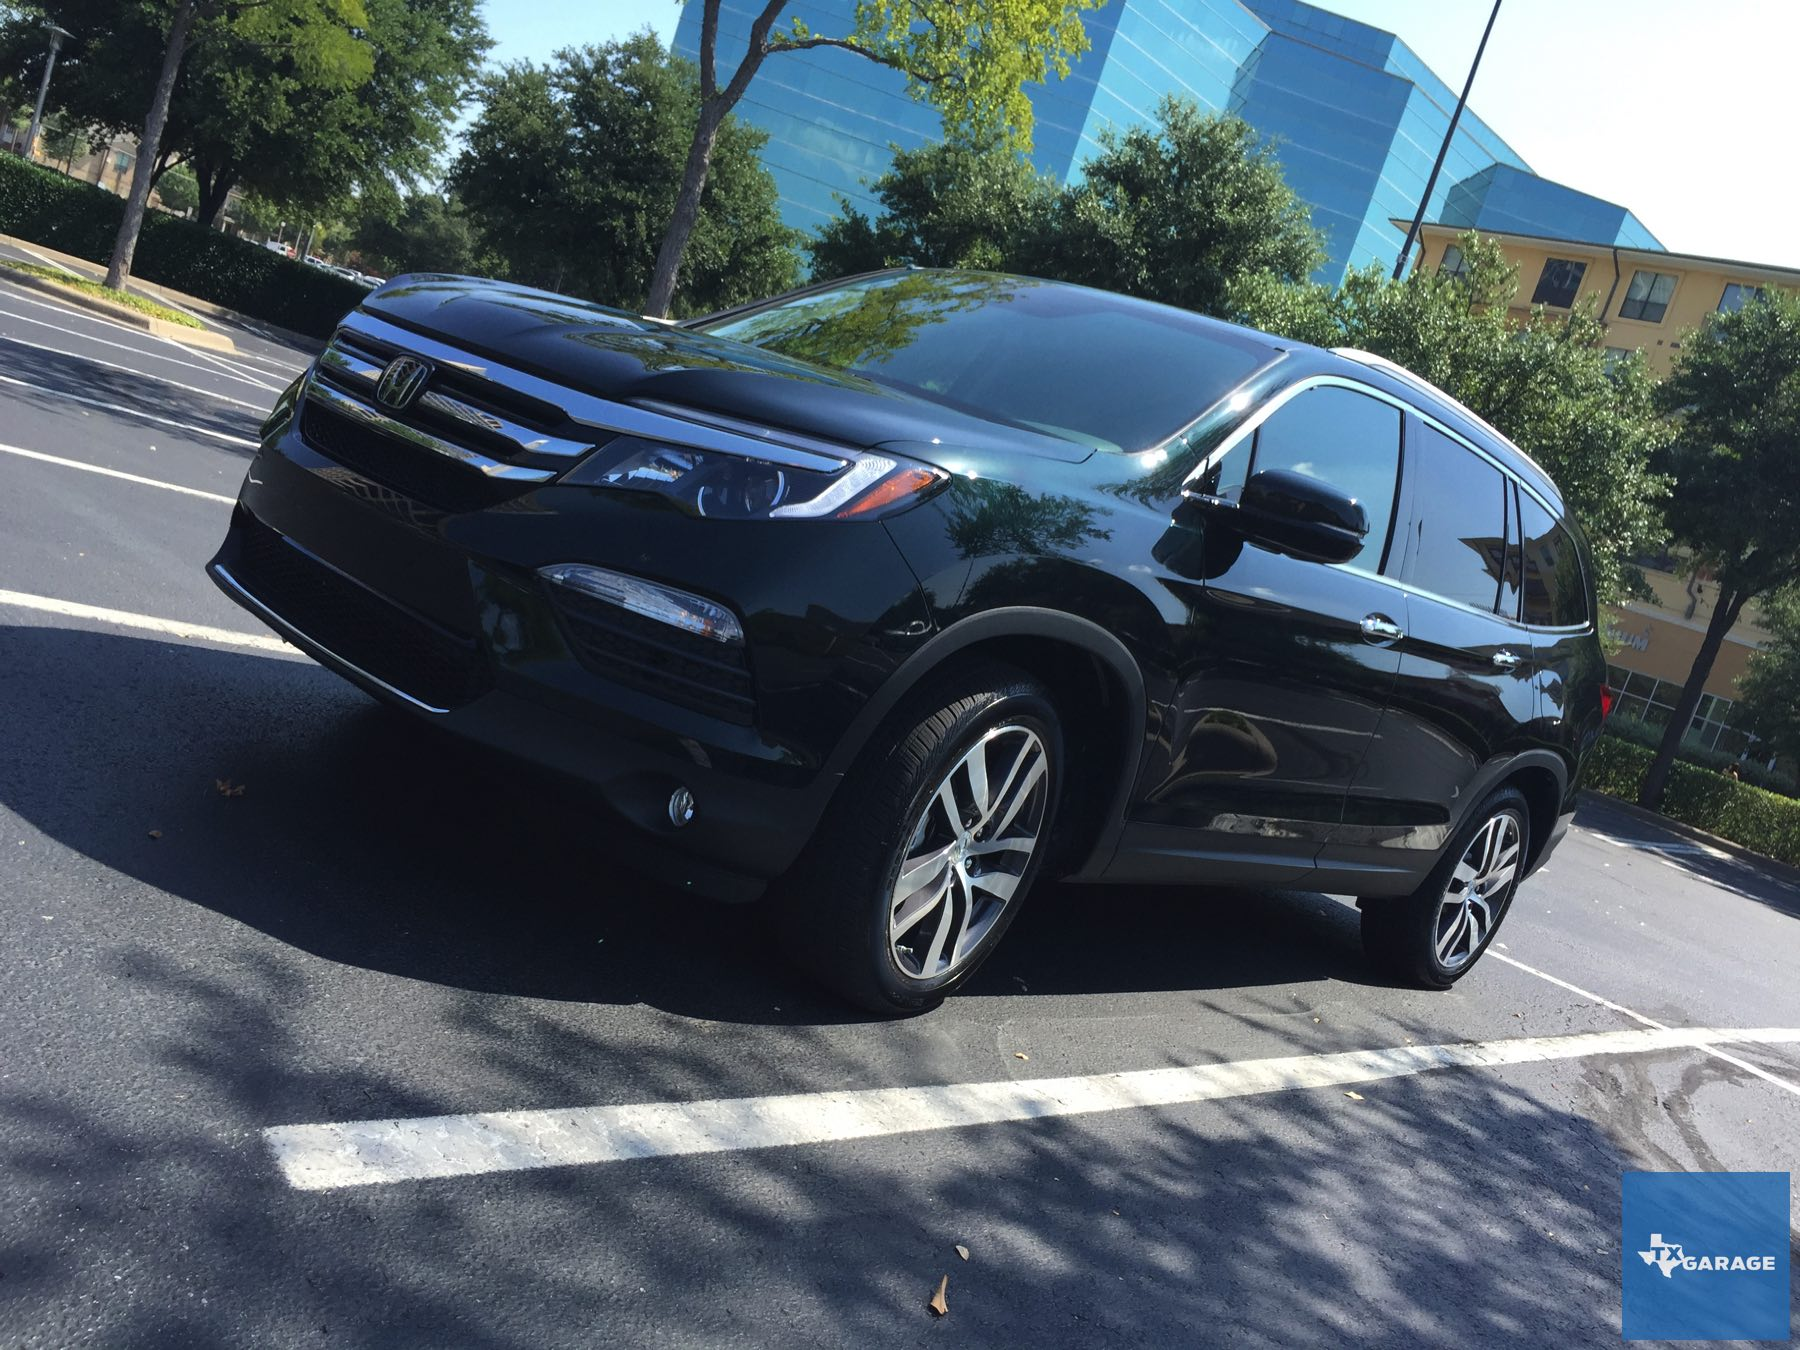 The 2016 Honda Pilot by txGarage